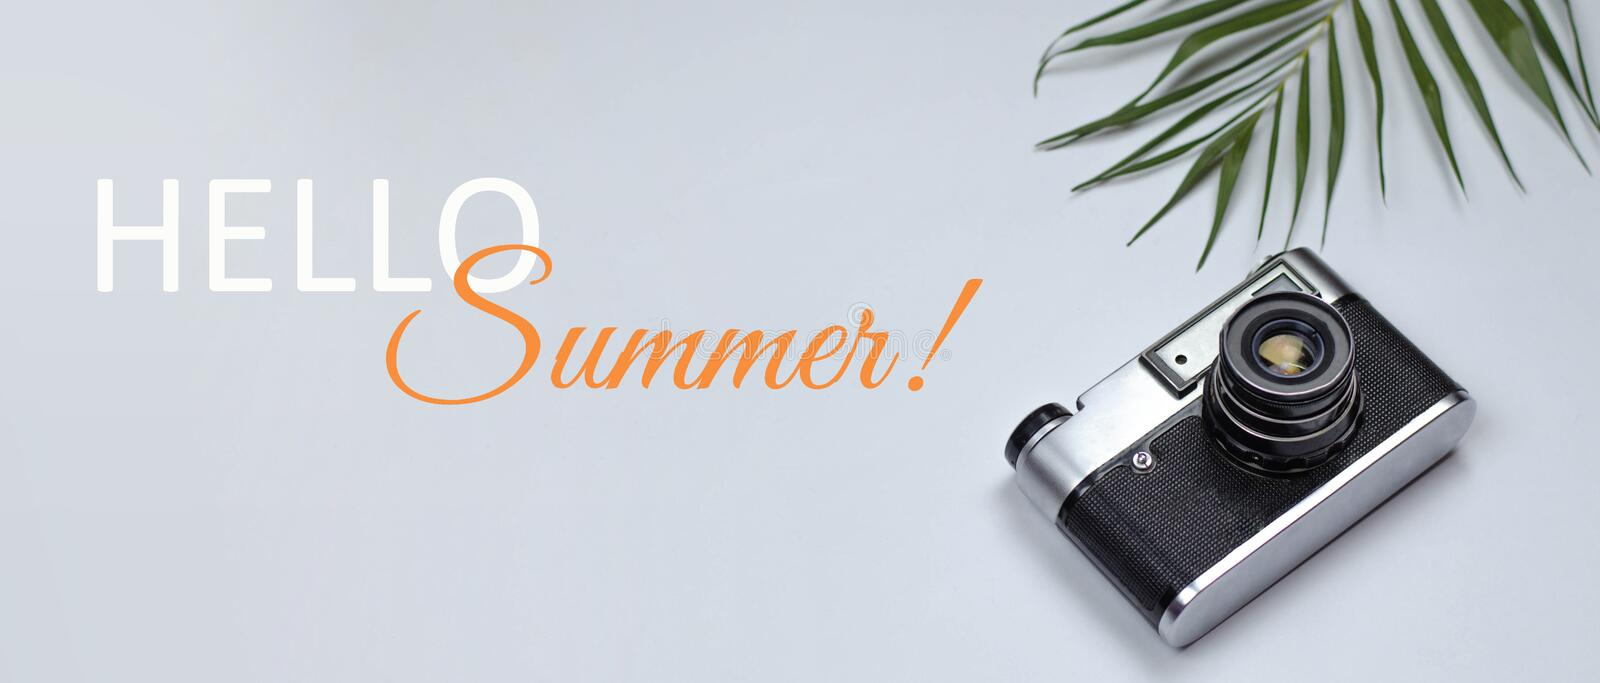 Banner for the site hello summer with a camera and a branch of palm trees royalty free stock image